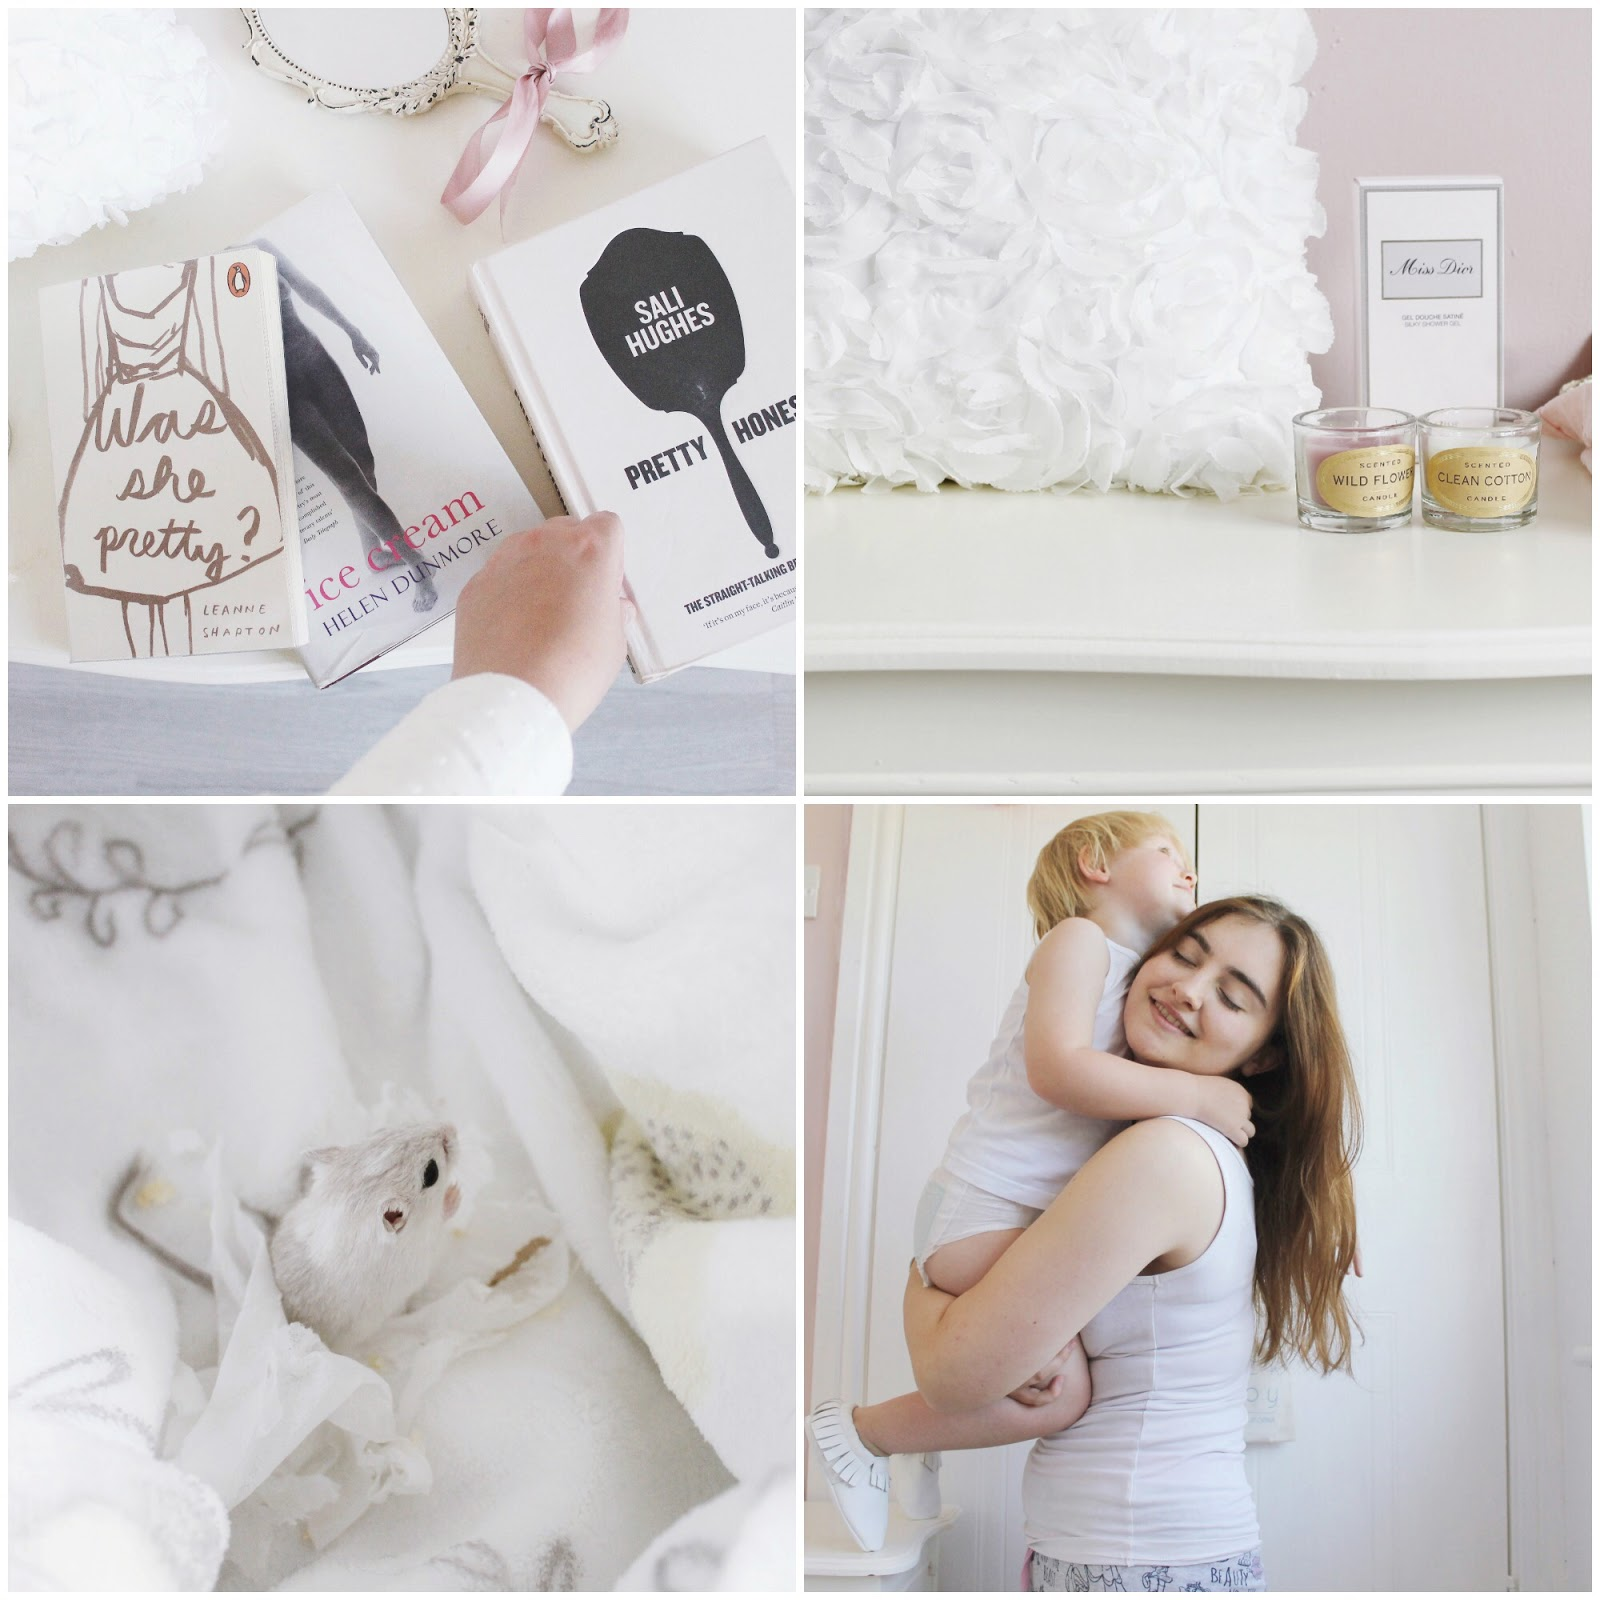 Shabby chic girly blog photo diary